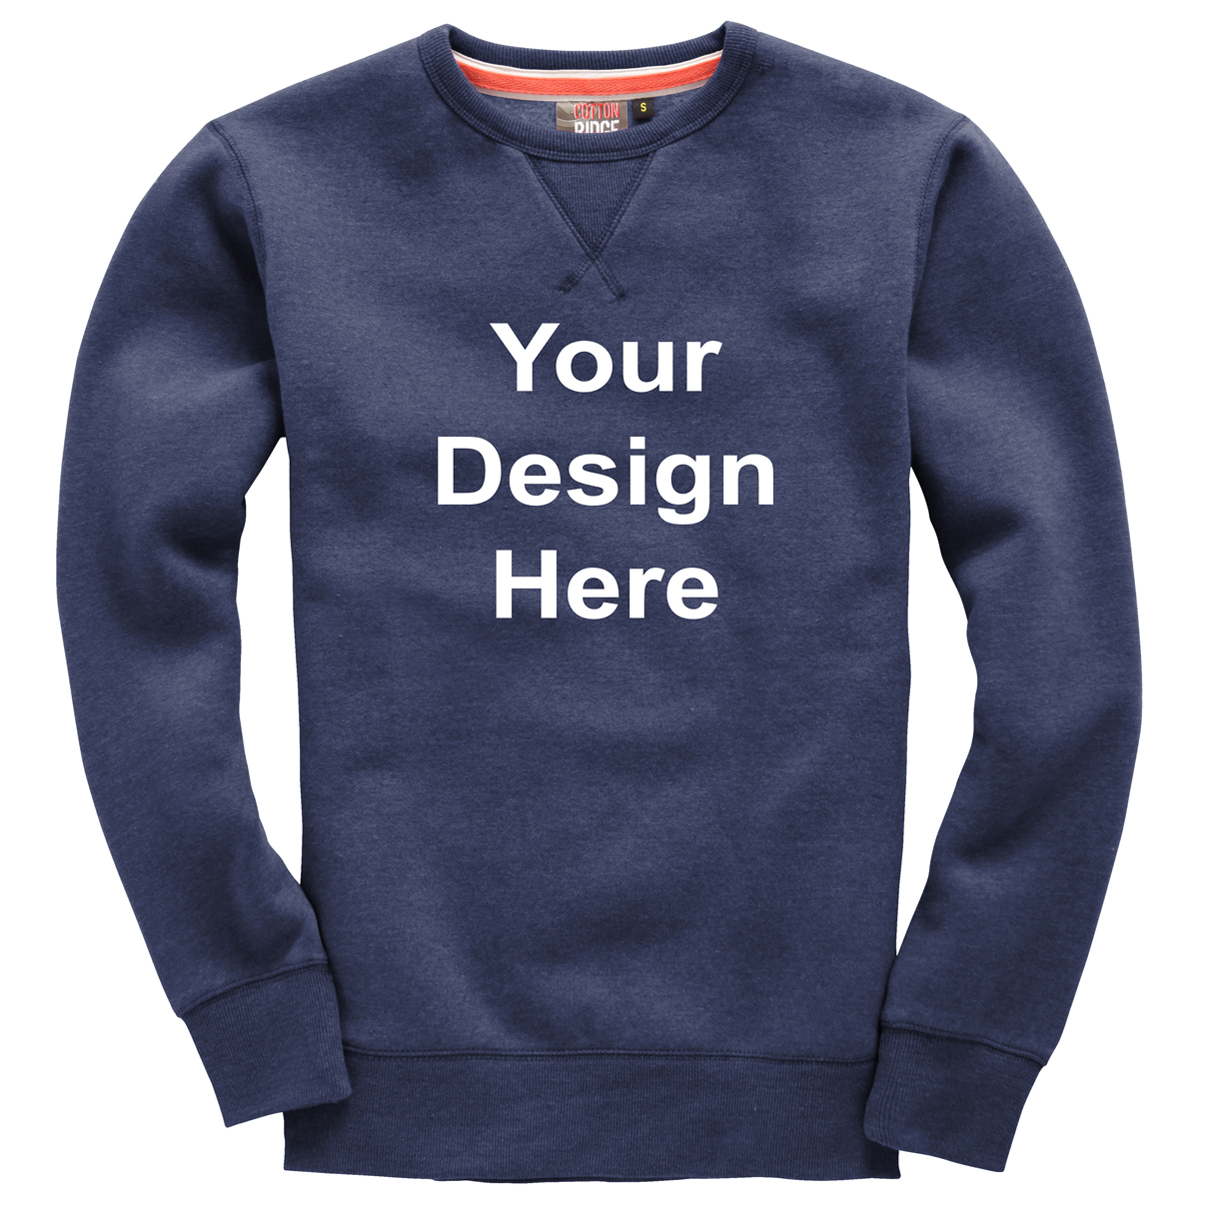 Personalised Sweatshirts